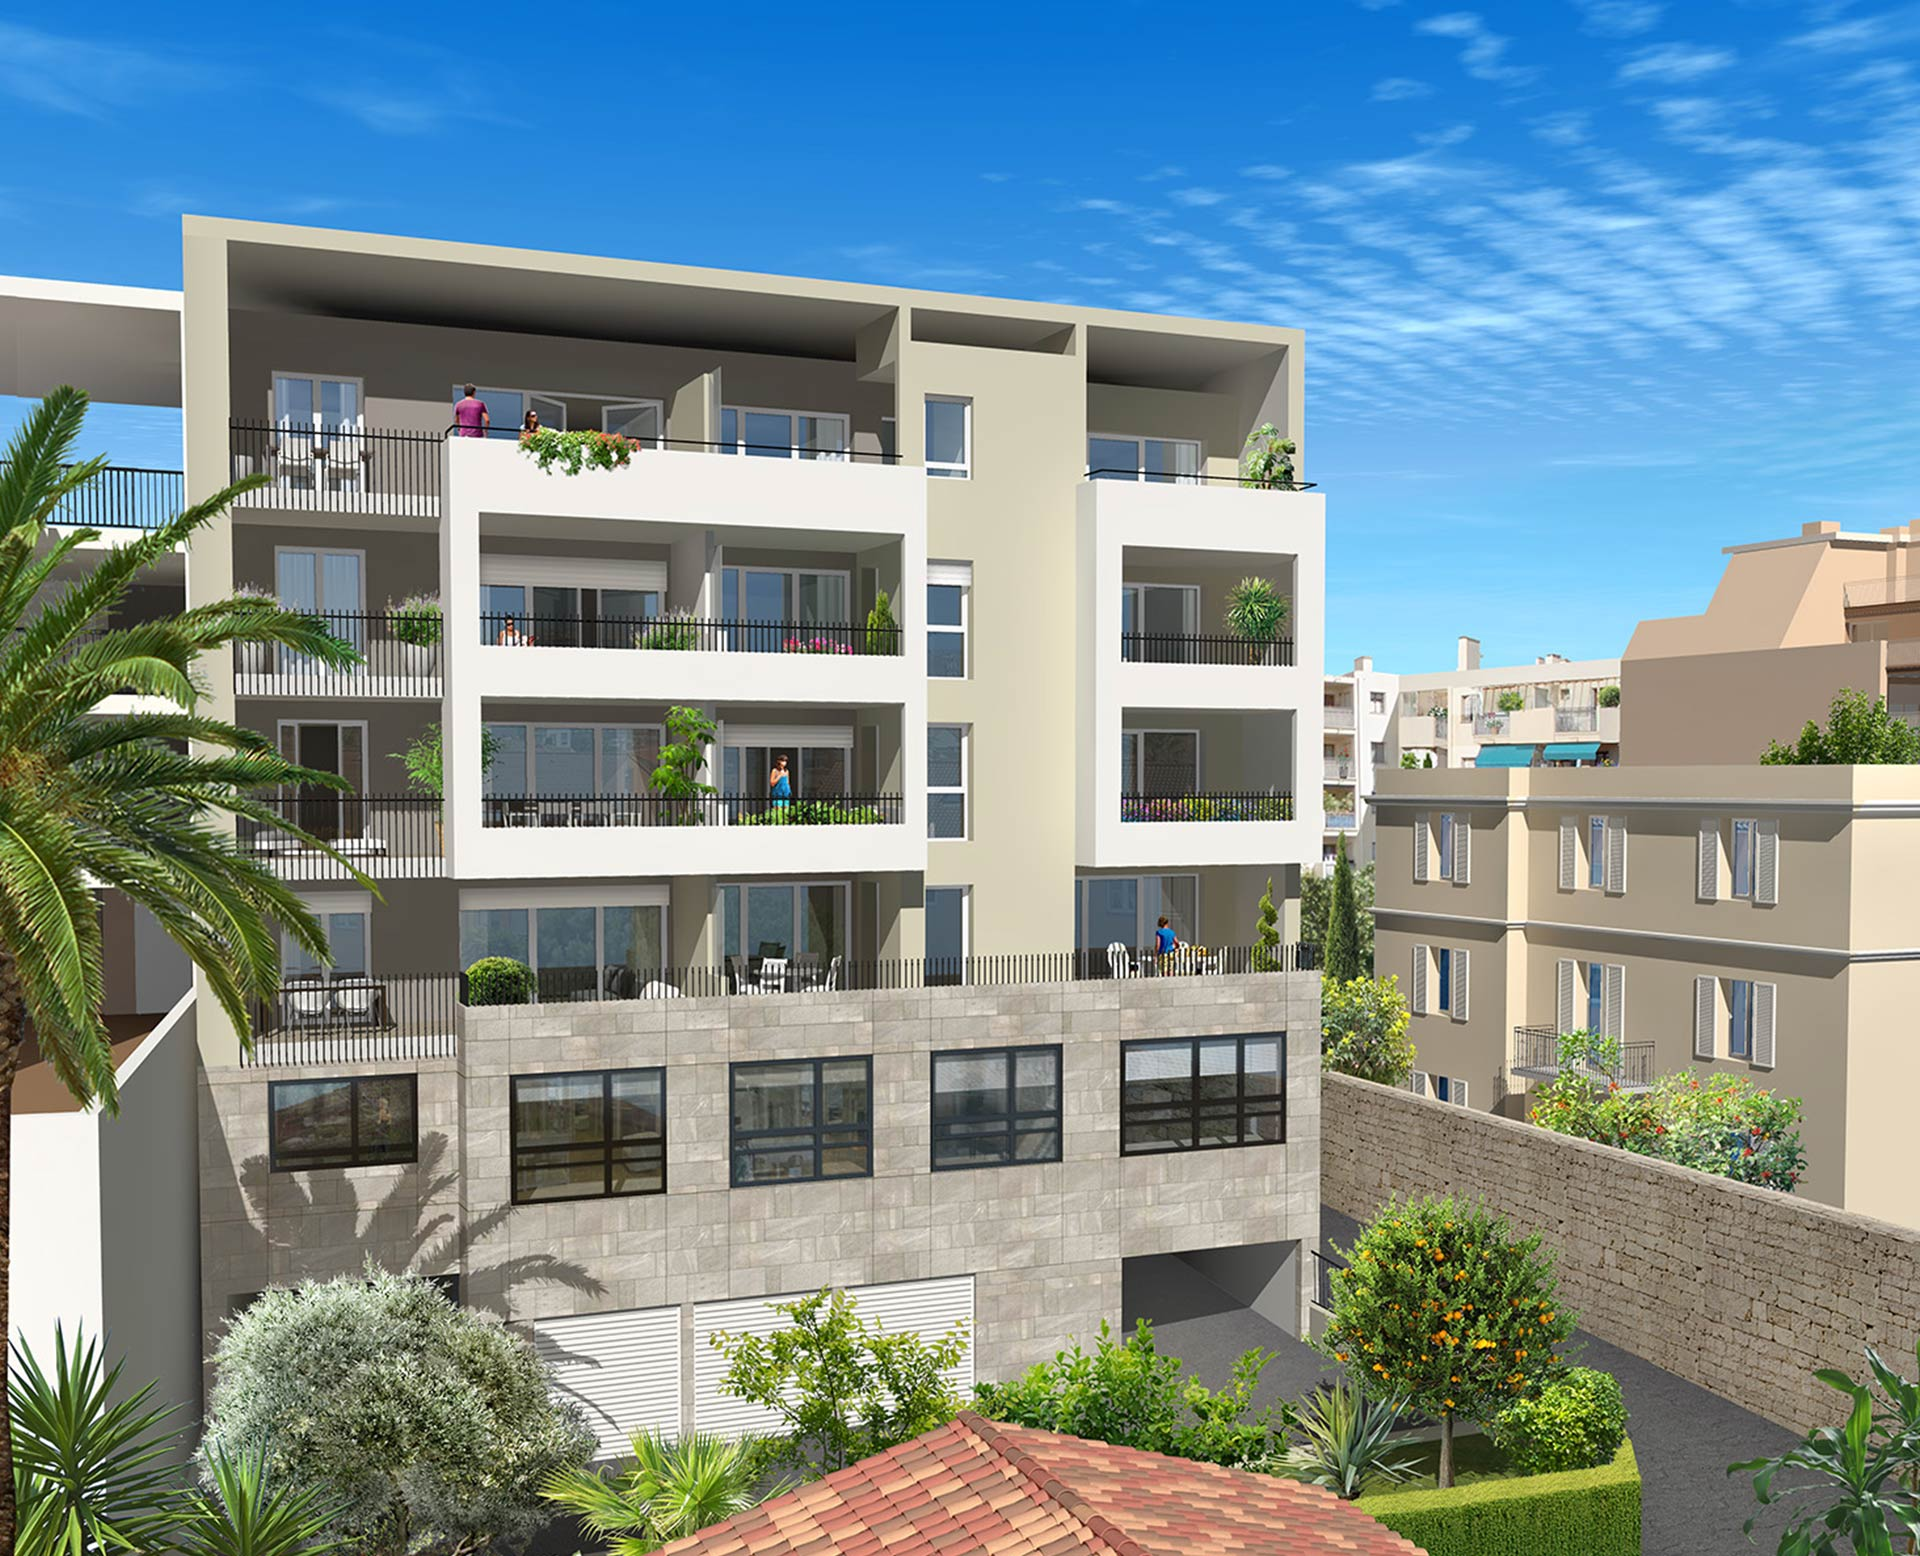 Programme Immobilier Saint Laurent du Var Central Square